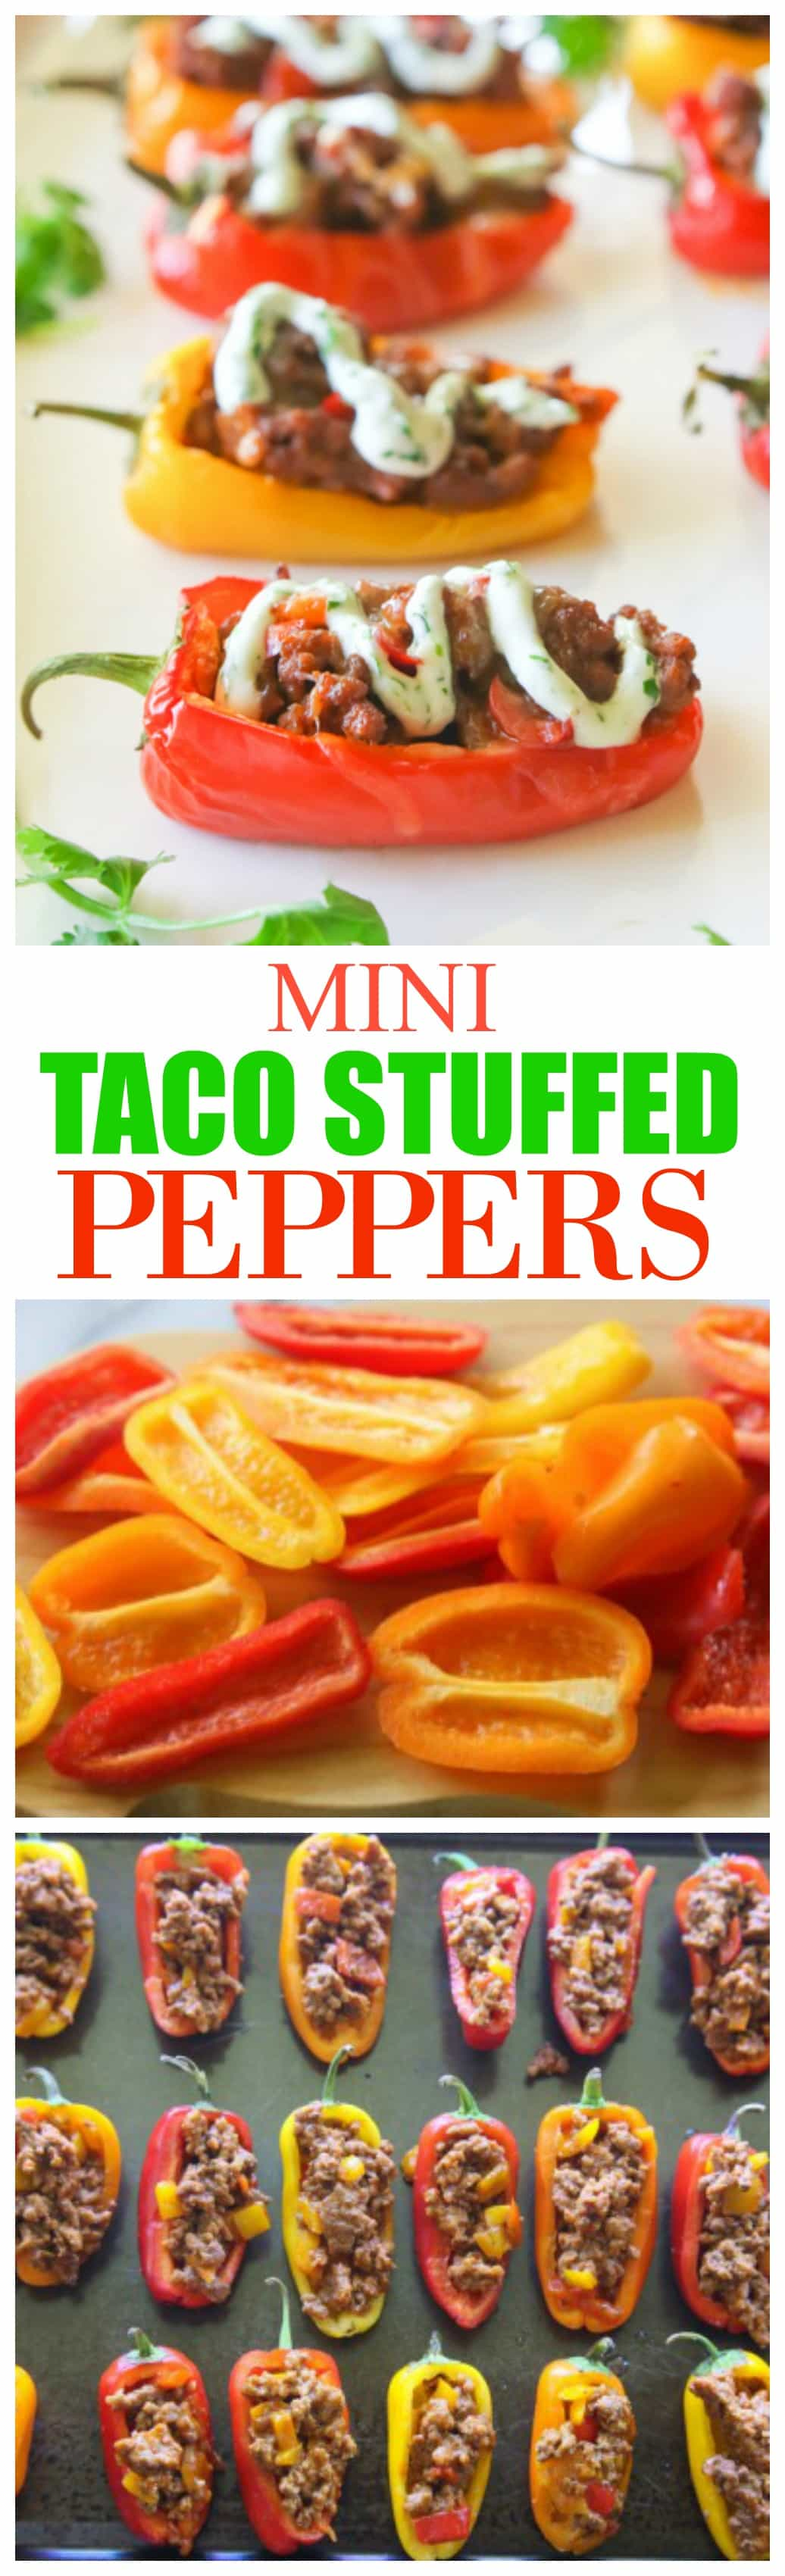 Mini Taco Stuffed Peppers - mini bell peppers stuffed with taco meat and drizzled with a cilantro cream sauce. #healthy #mexican #appetizer #taco #stuffed #peppers